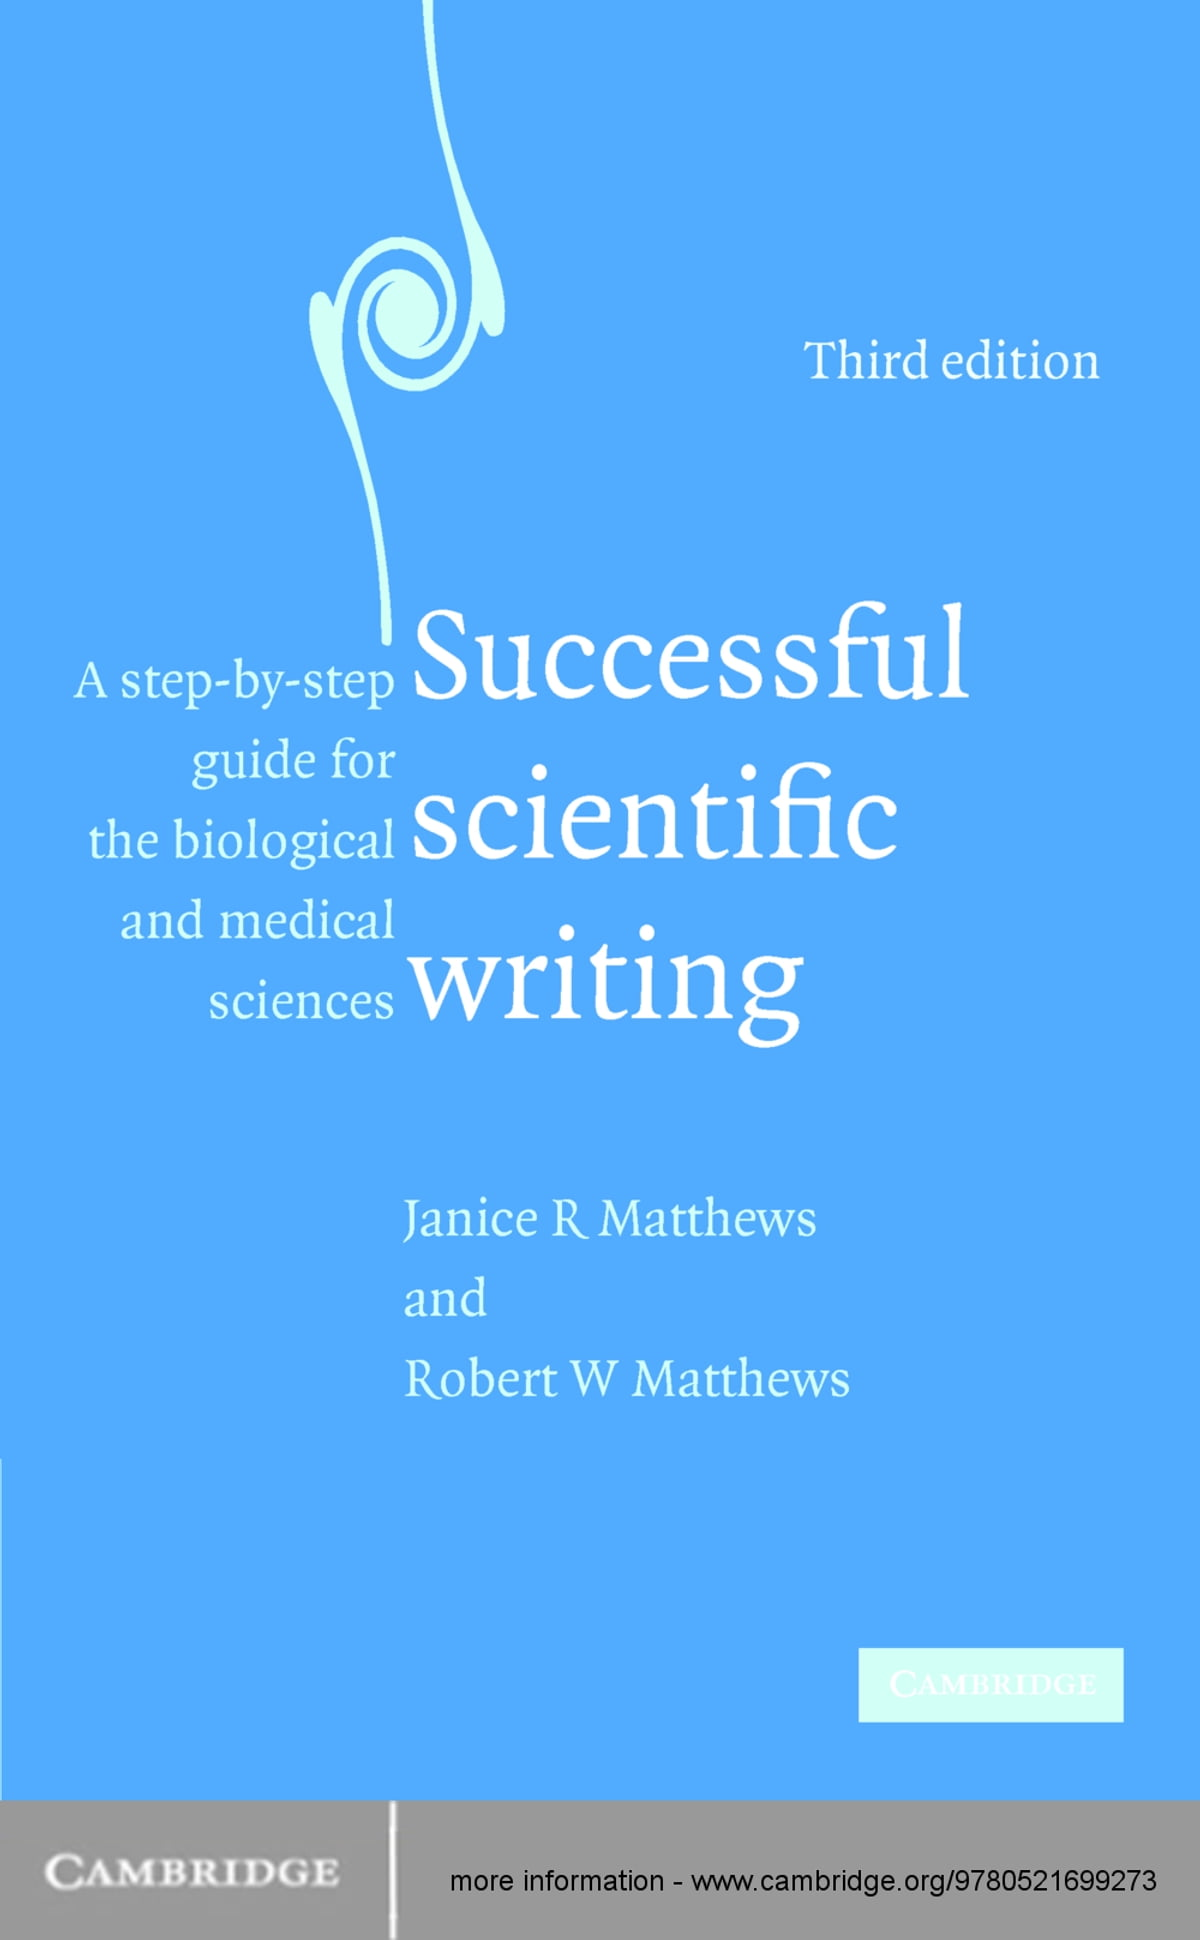 Successful Scientific Writing: A Step-by-Step Guide for the Biological and Medical Sciences